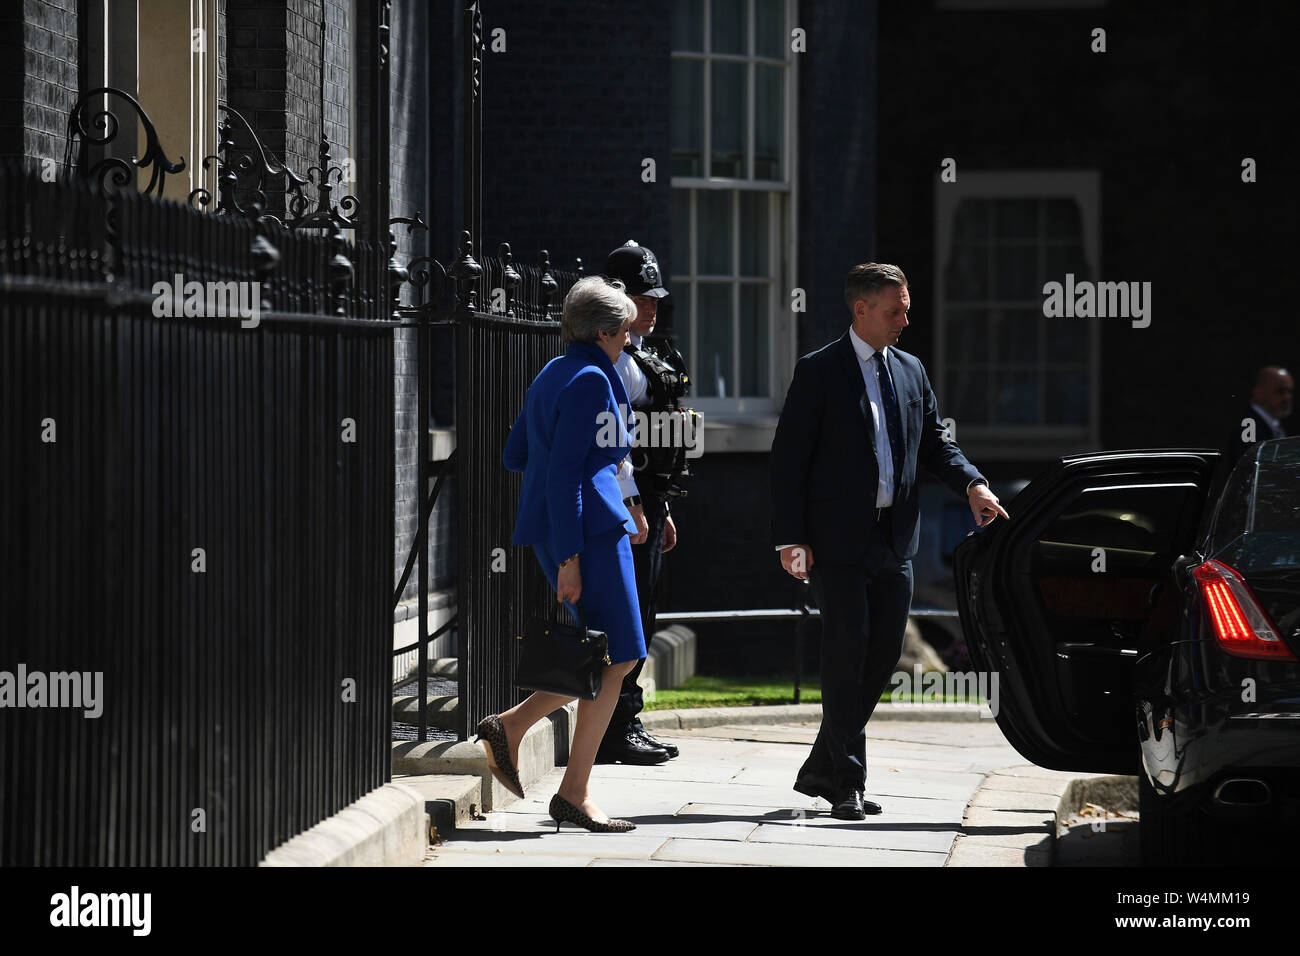 London, UK. 24th July, 2019. British Prime Minister Theresa May leaves 10 Downing Street for her last Prime Minister's Questions at the House of Commons in London, Britain on July 24, 2019. Credit: Han Yan/Xinhua/Alamy Live News Stock Photo